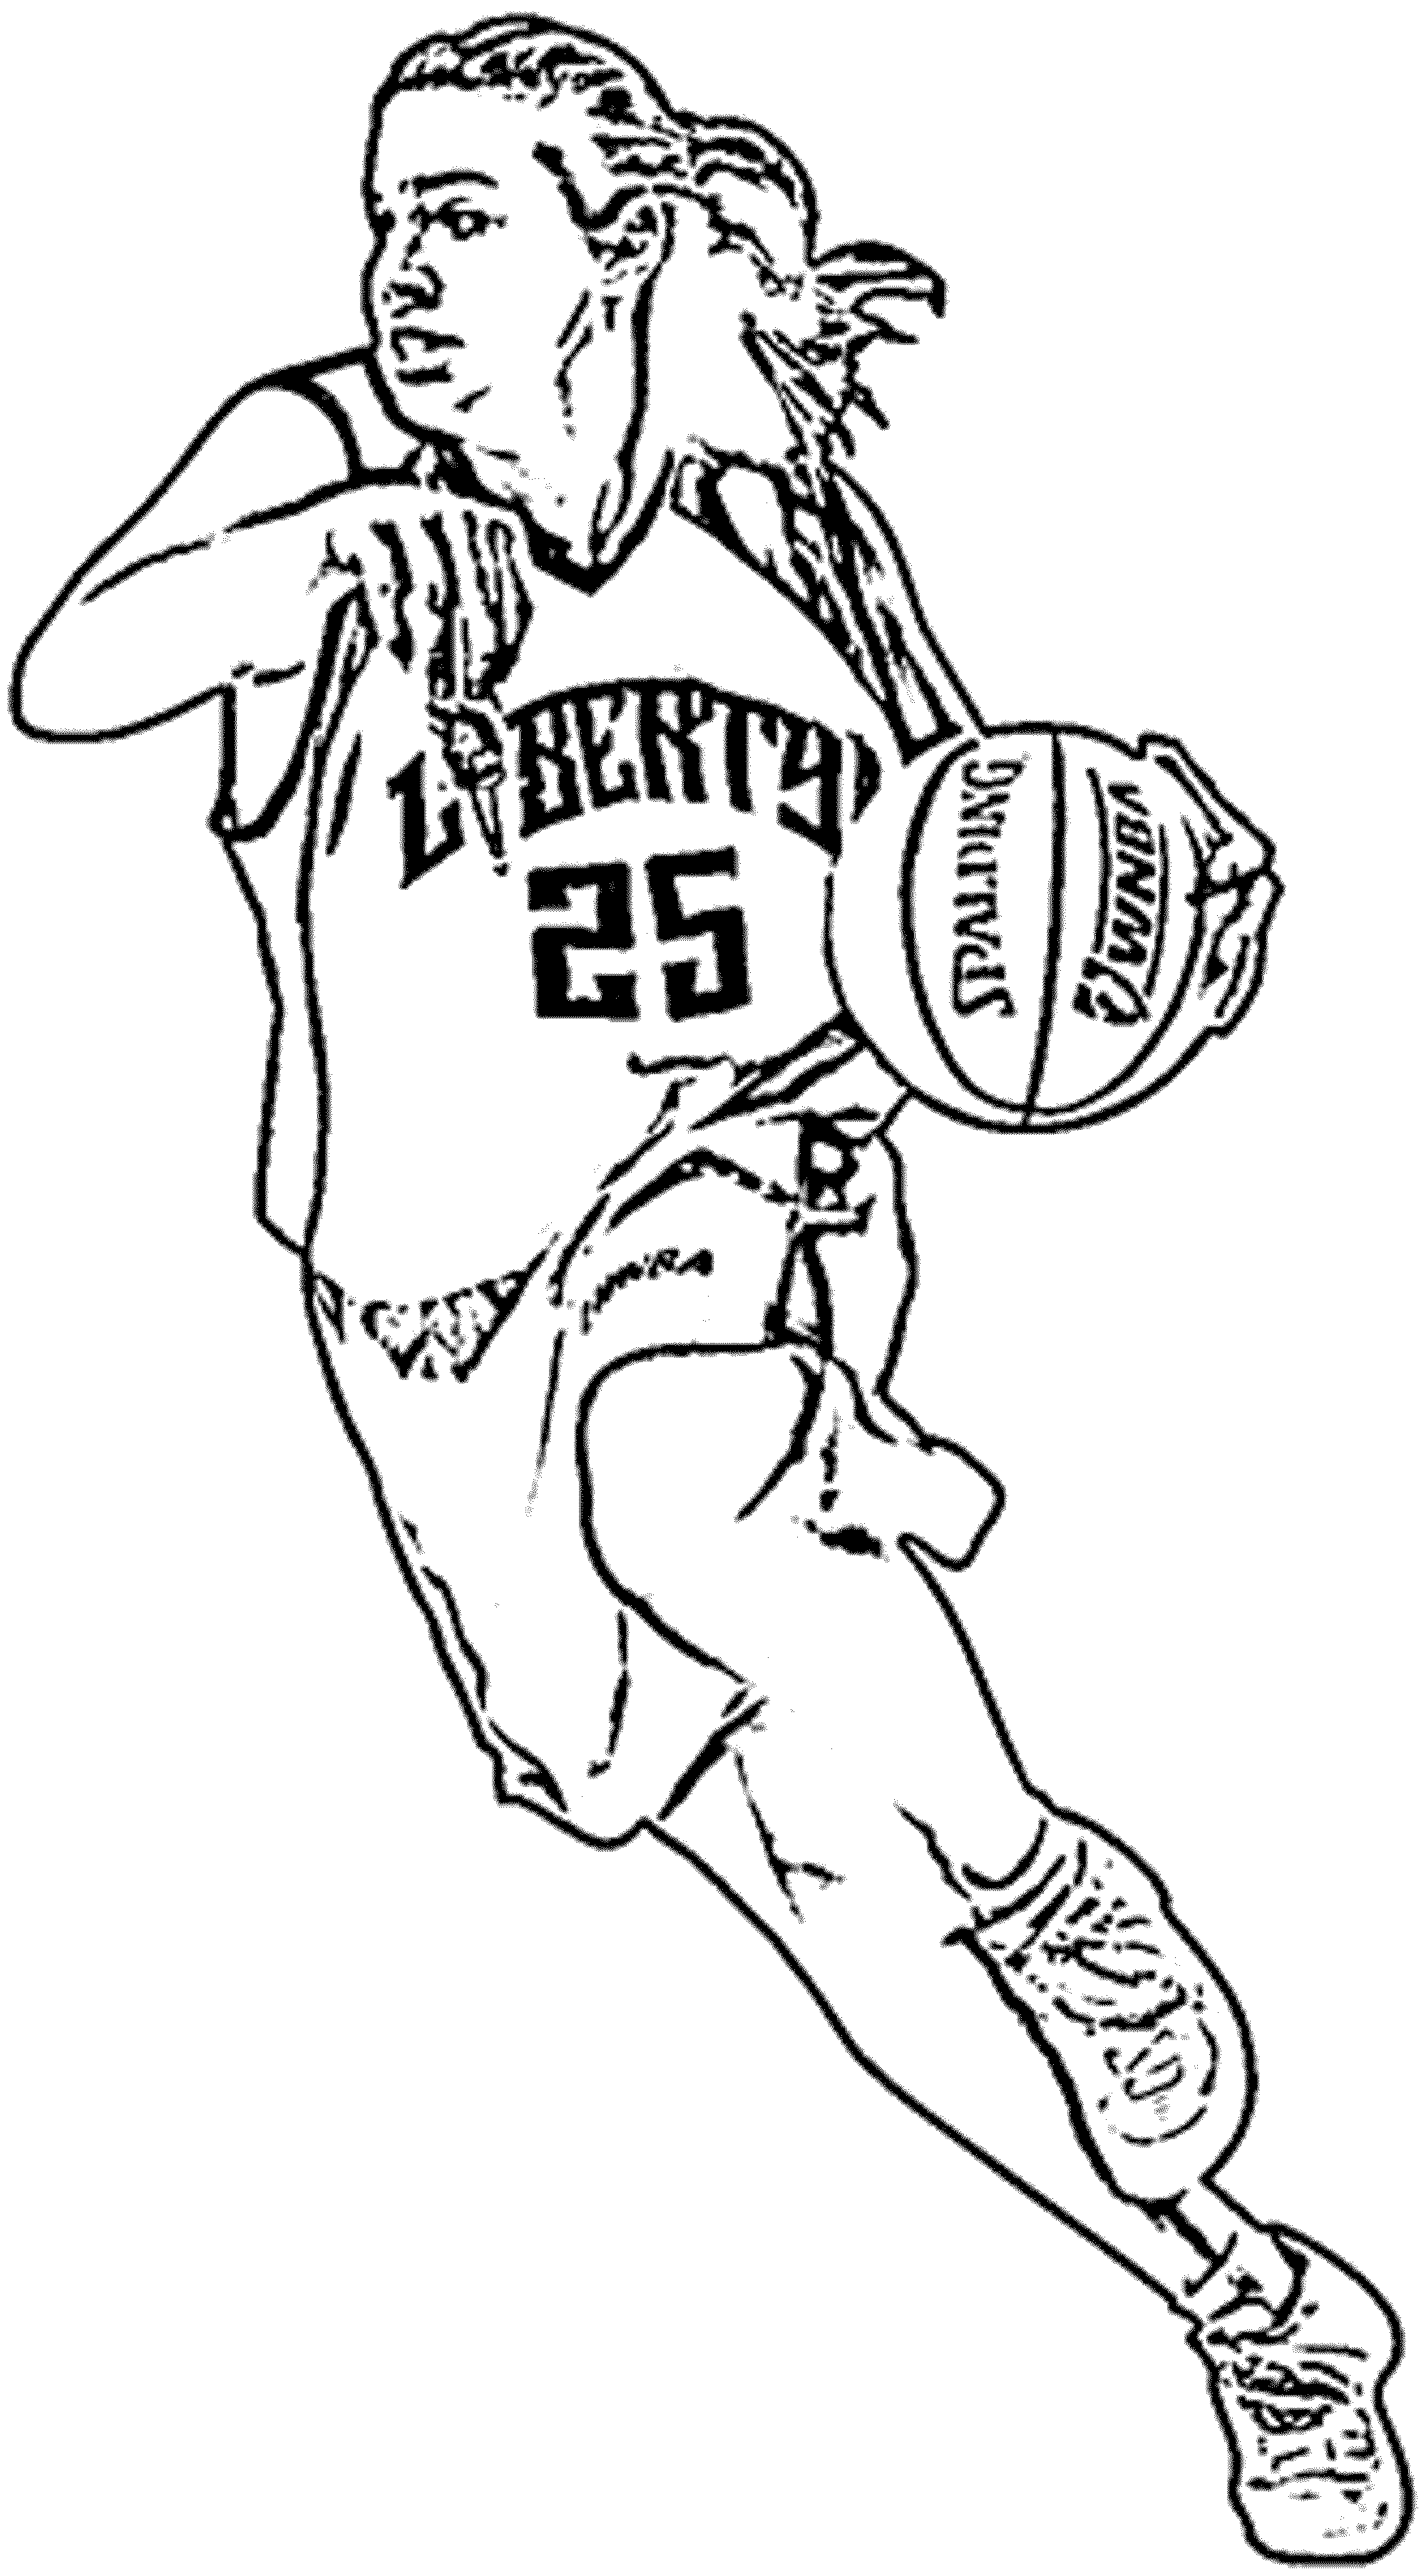 nba players coloring pages nba coloring pages squidoo party invitations ideas coloring pages nba players